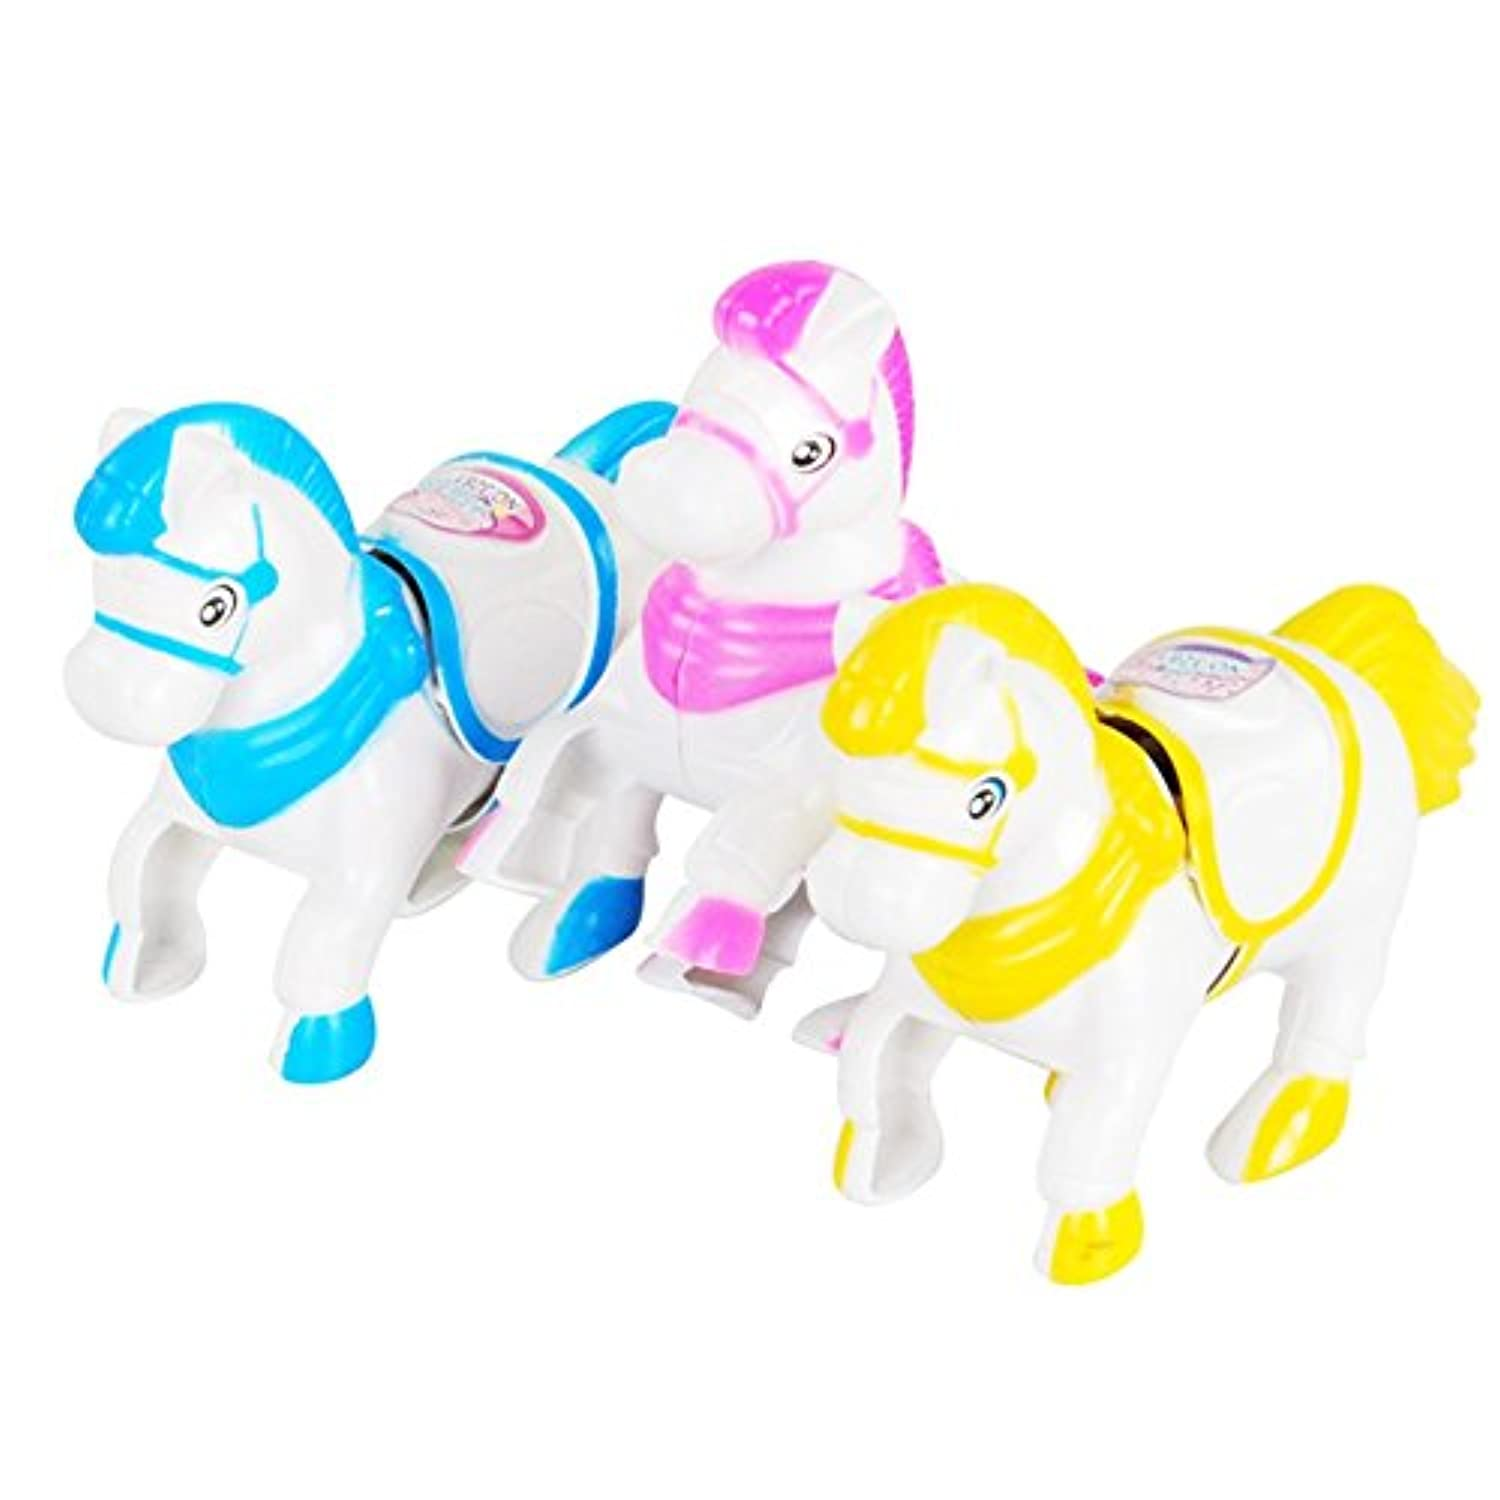 BleuMoo Up Plastic Clockwork Spring Wind Up Horse Shaped Toys Gift For Children Kids